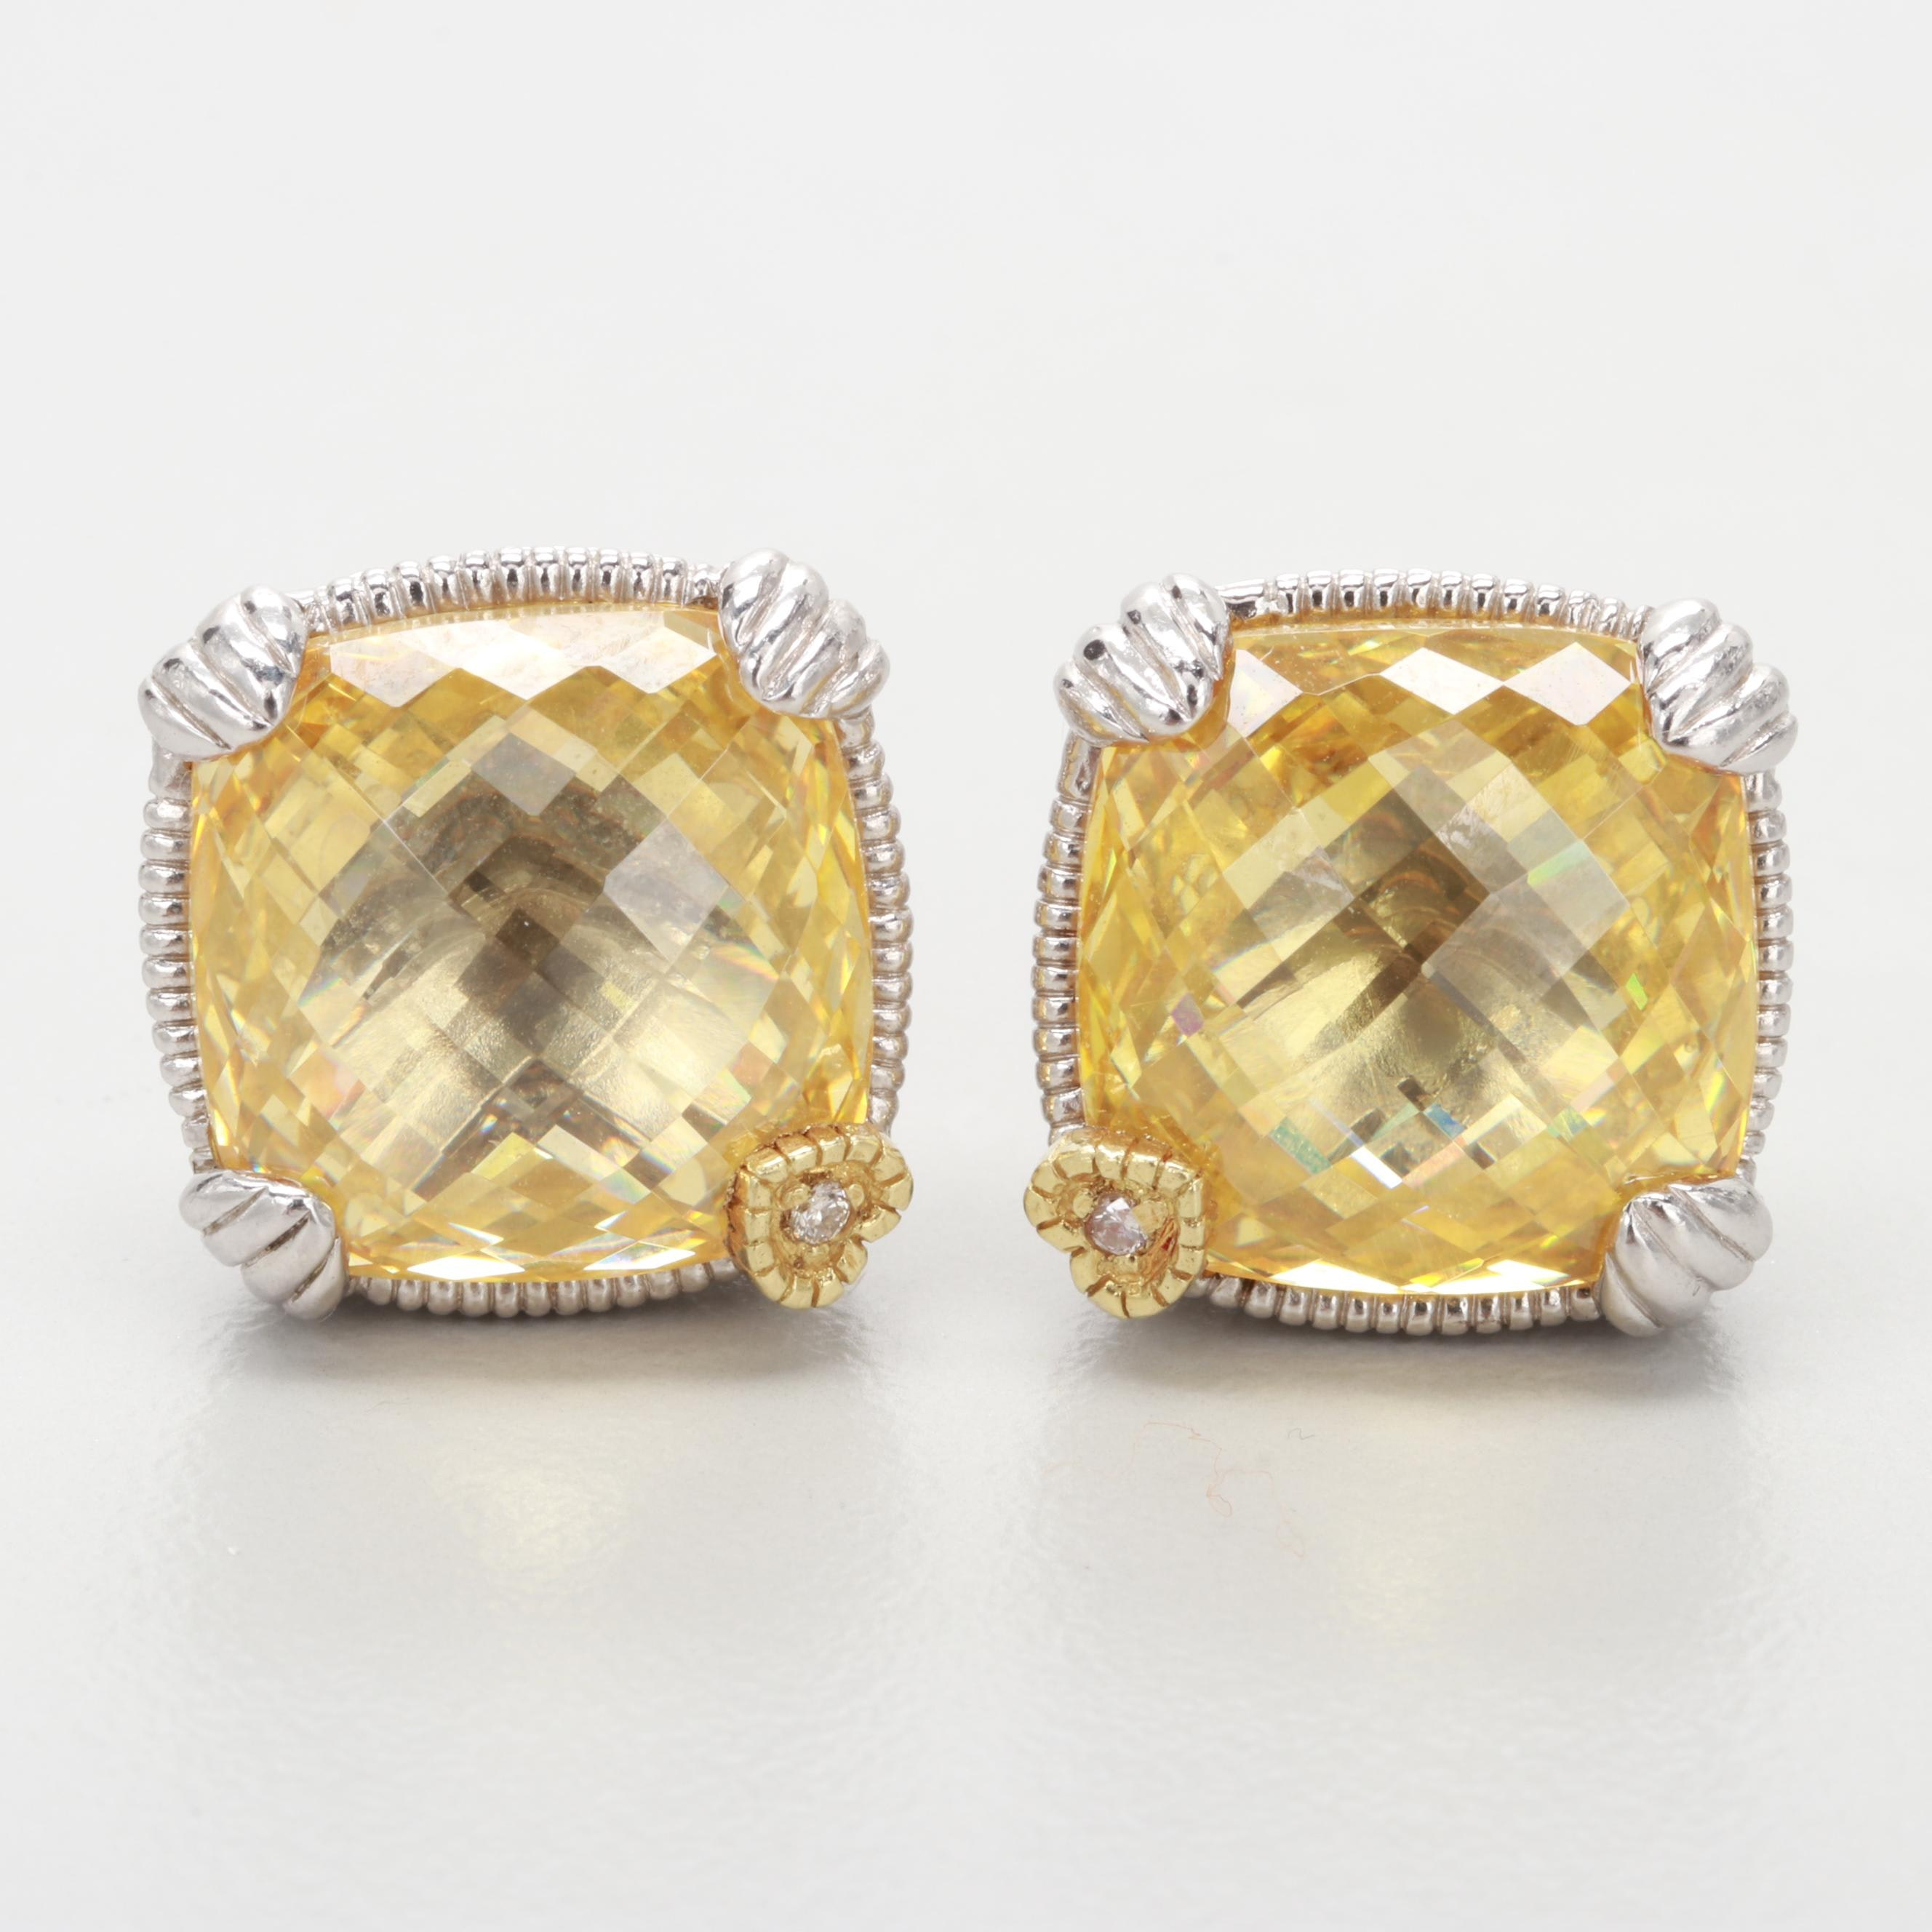 Judith Ripka Sterling Cubic Zirconia and Diamond Earrings with 18K Gold Accents